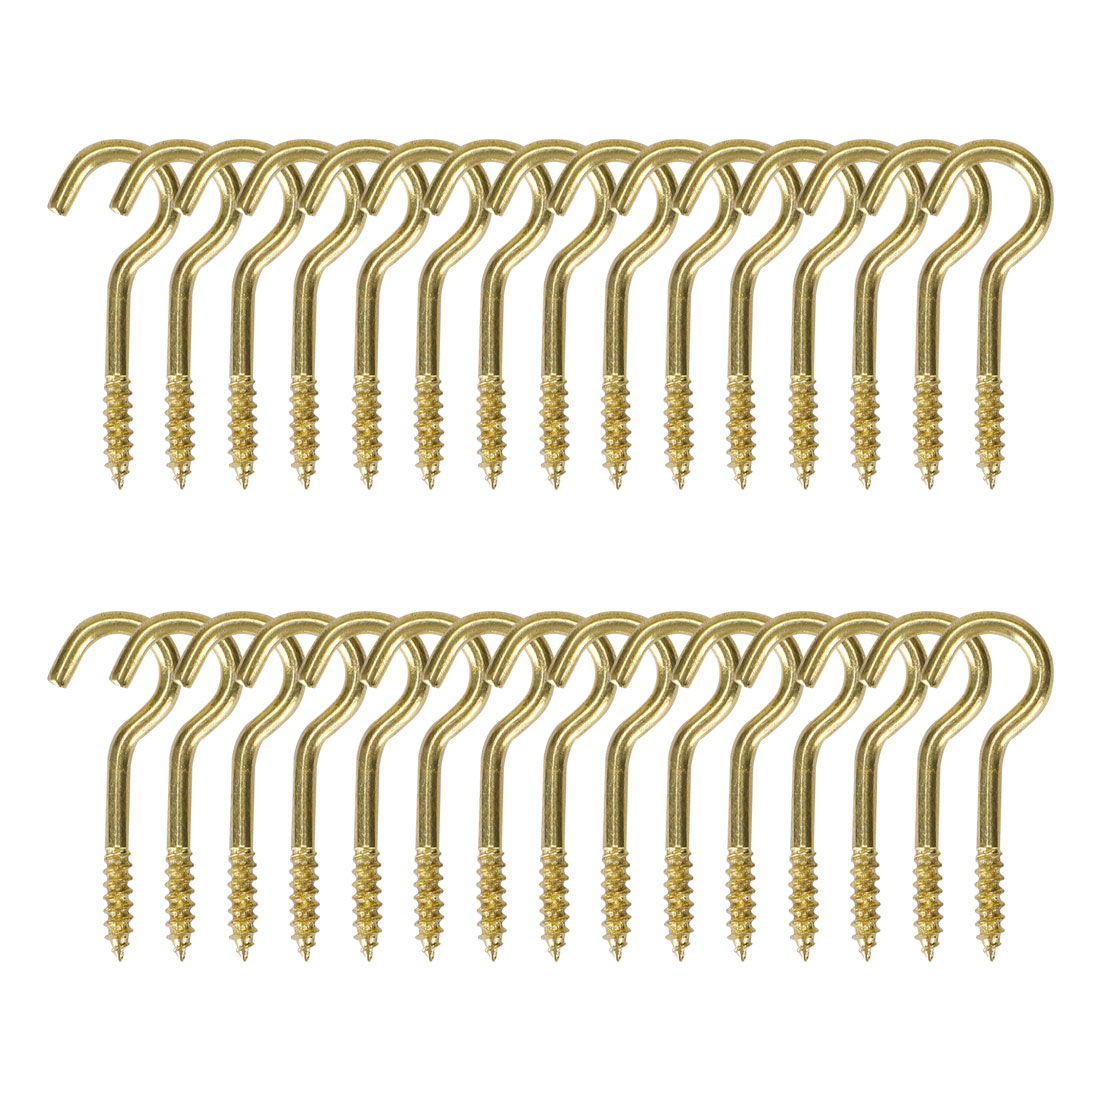 30pcs Cup Ceiling Hooks 1 Inch Durable Metal Screw in Hanger Hooks Gold Tone